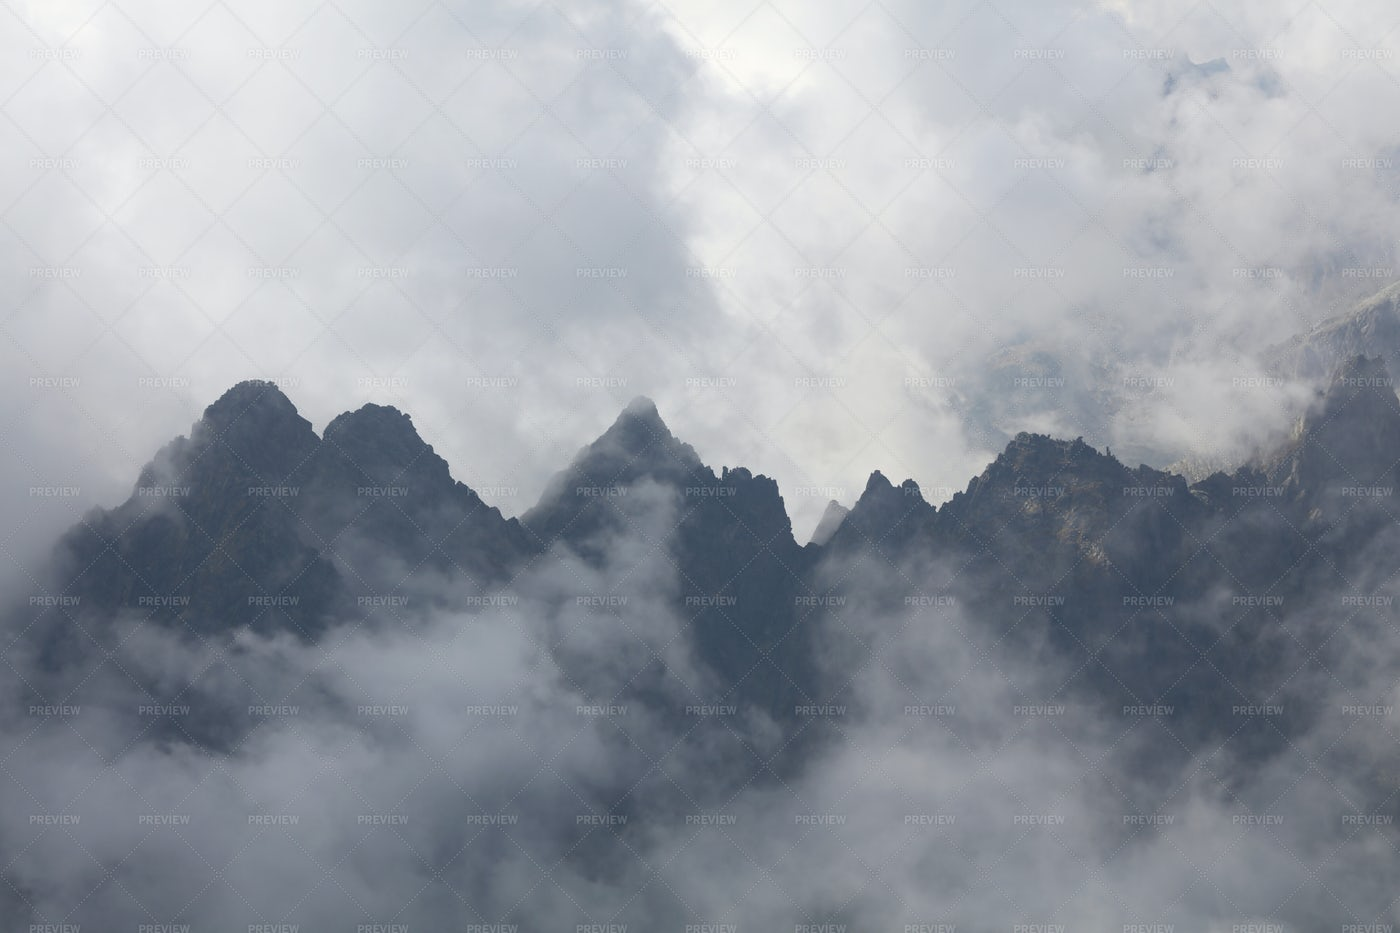 Mountains And Foggy Clouds: Stock Photos